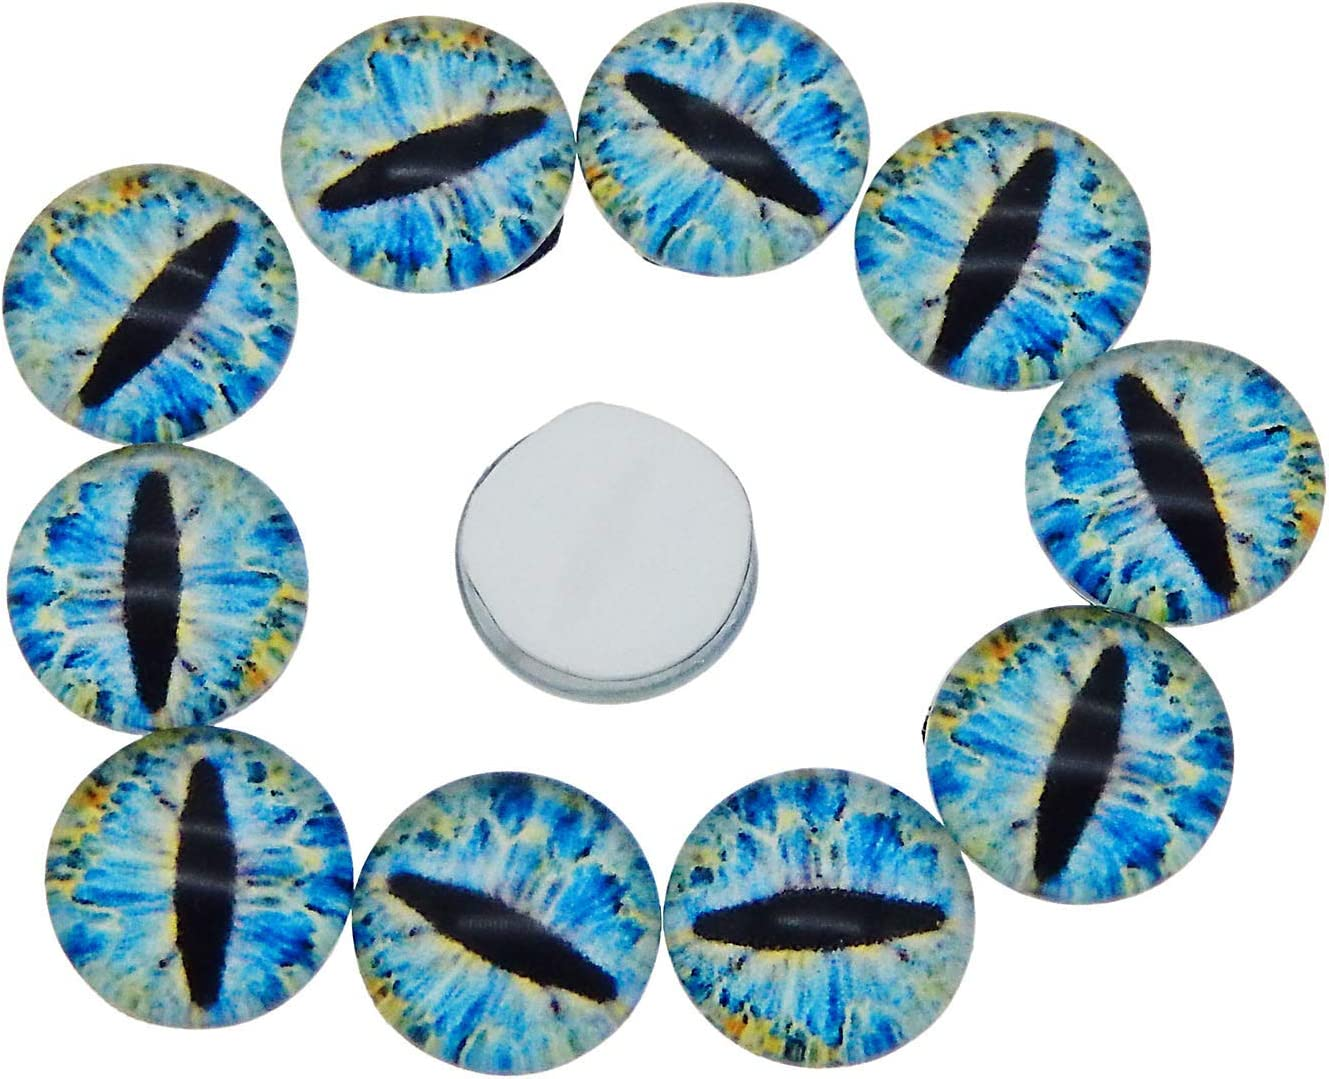 GraceAngie 30PCS Lizard Frog Dragon Eyes Round time gem Glass Cabochon Dome Cover Accessory 12MM